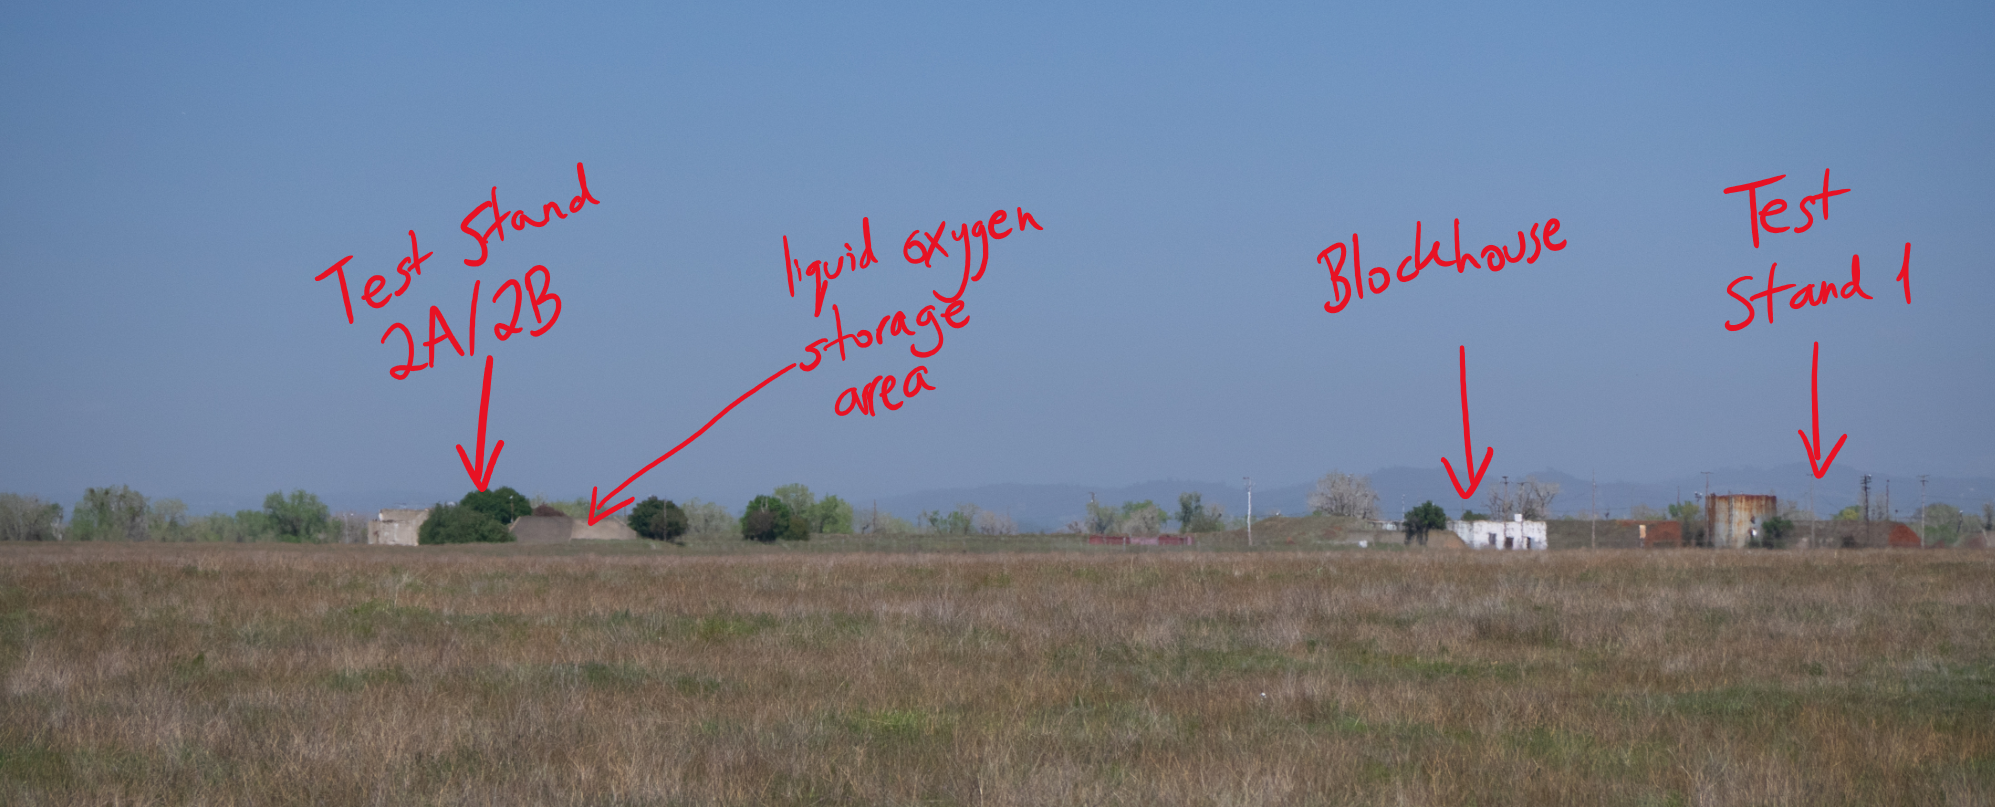 Annotated view of the remains of the Alpha test site.